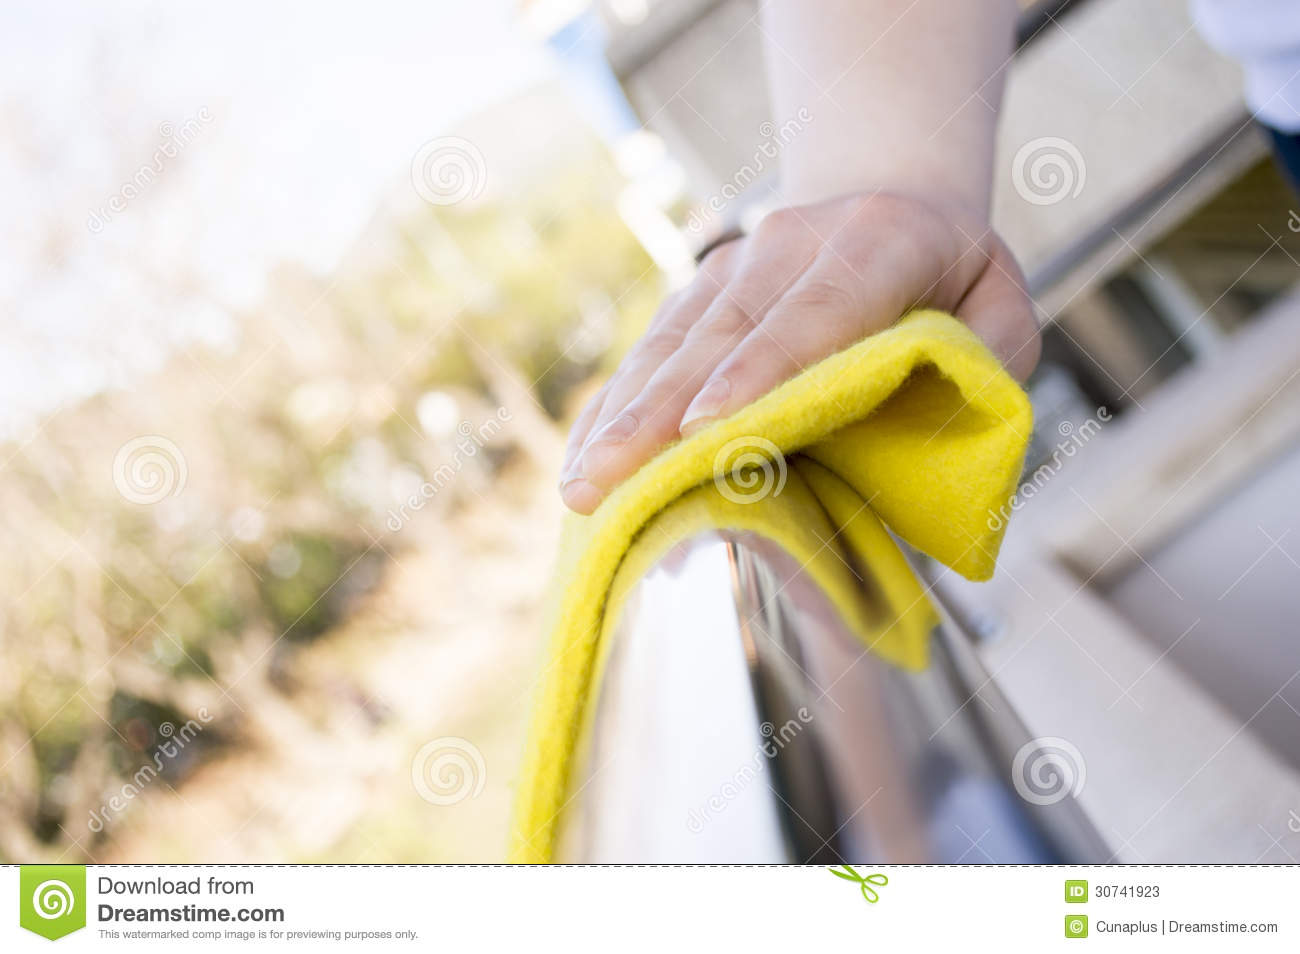 how to clean plastic railing